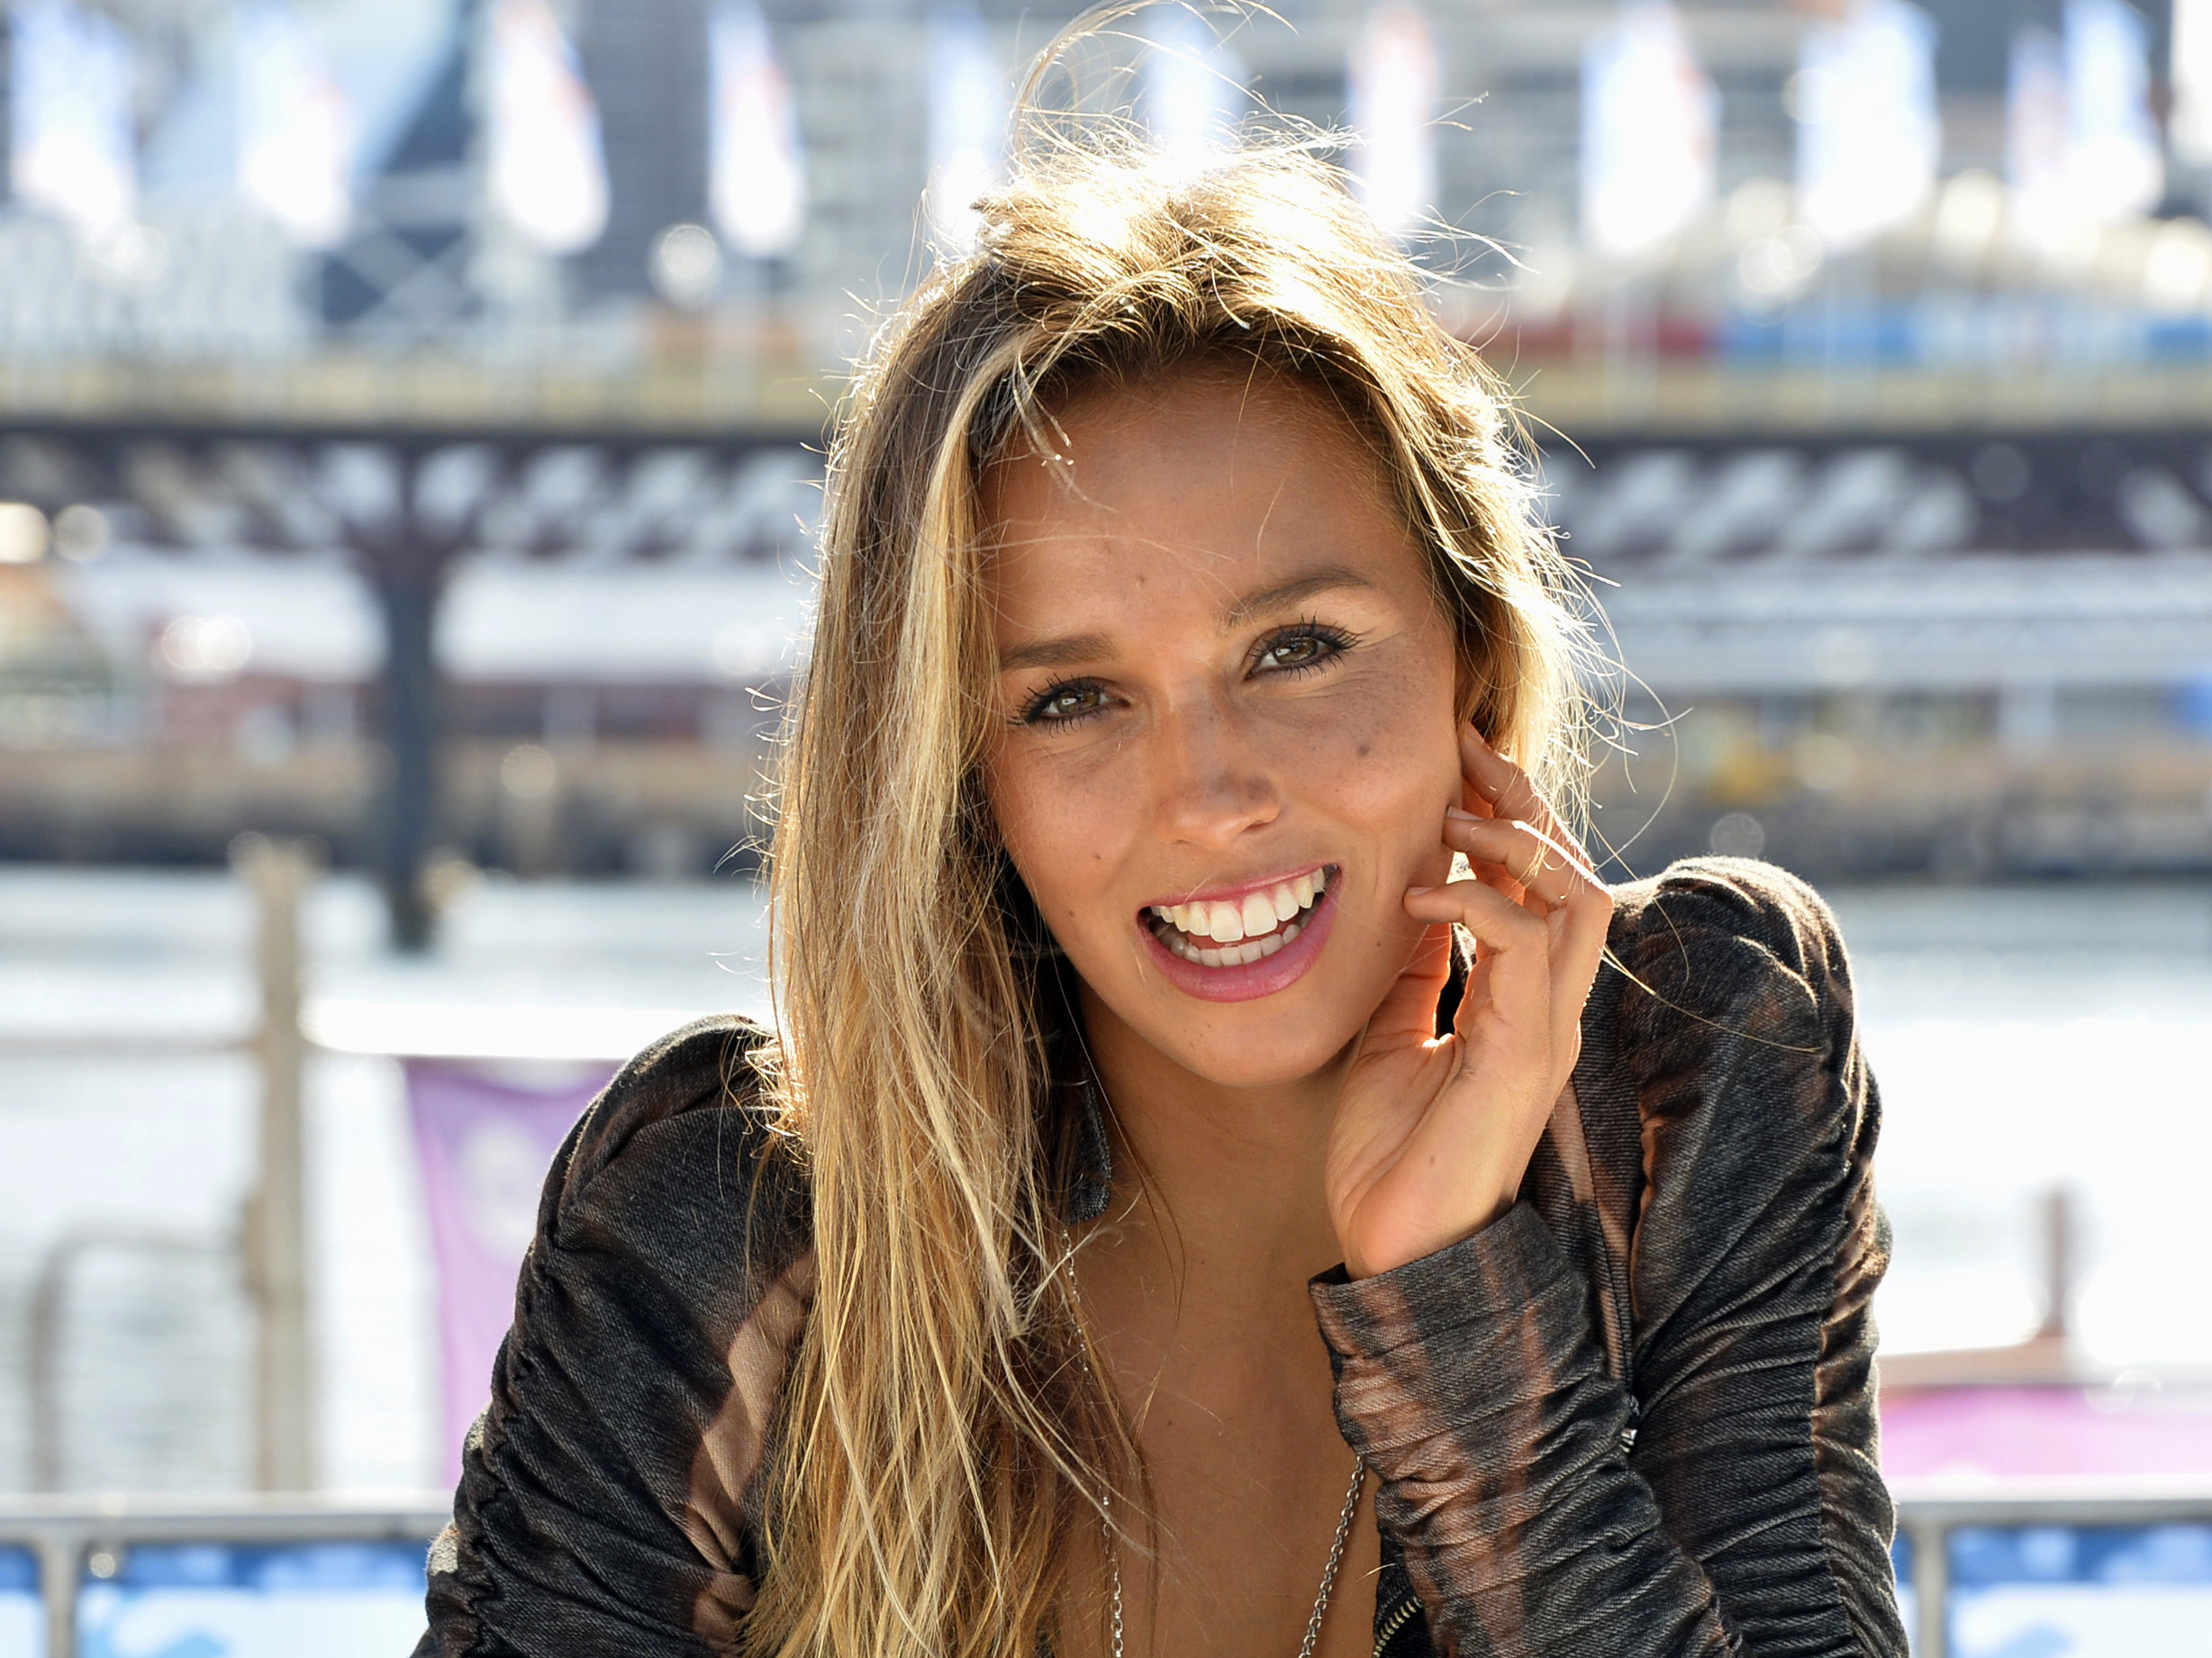 Lets Get To Know Sally Fitzgibbons One Of The Best Female